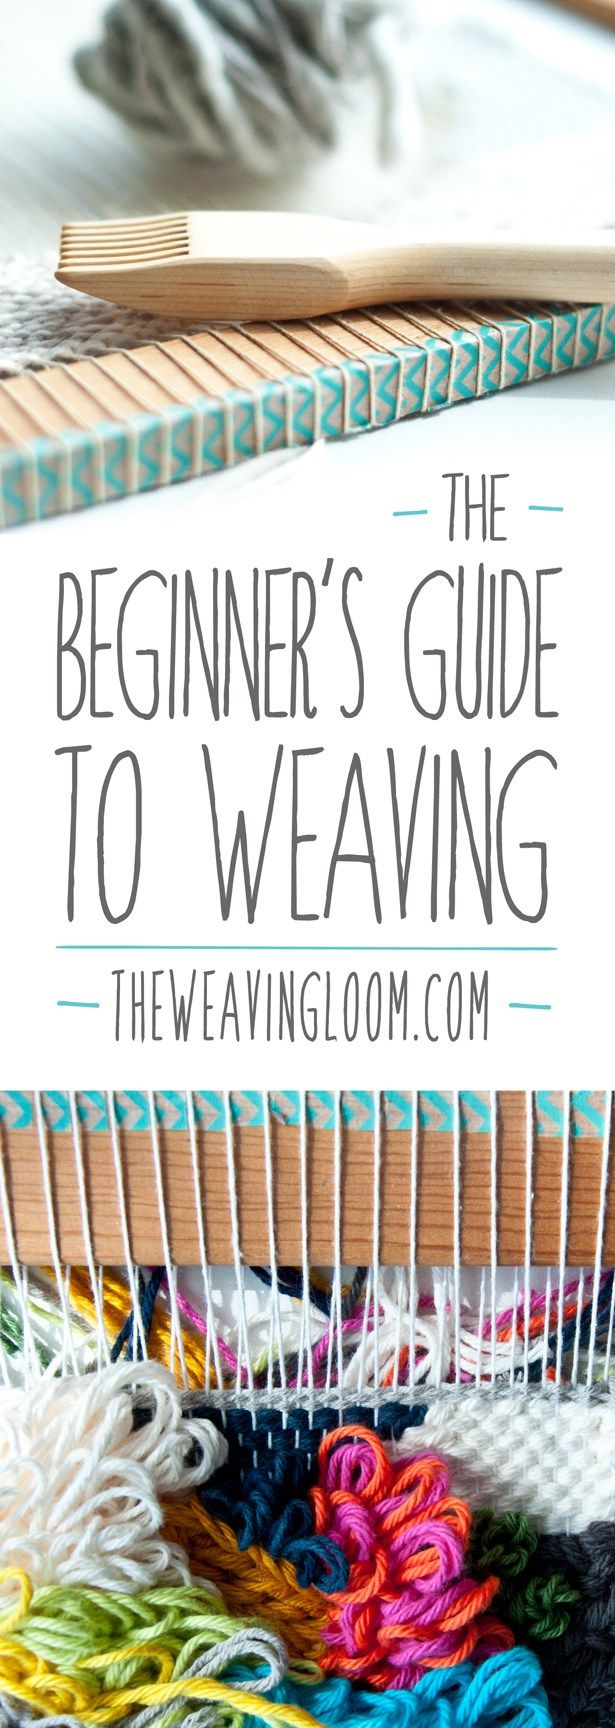 Featured blogger an interview with kate from the weaving loom featured blogger an interview with kate from the weaving loom fandeluxe Ebook collections